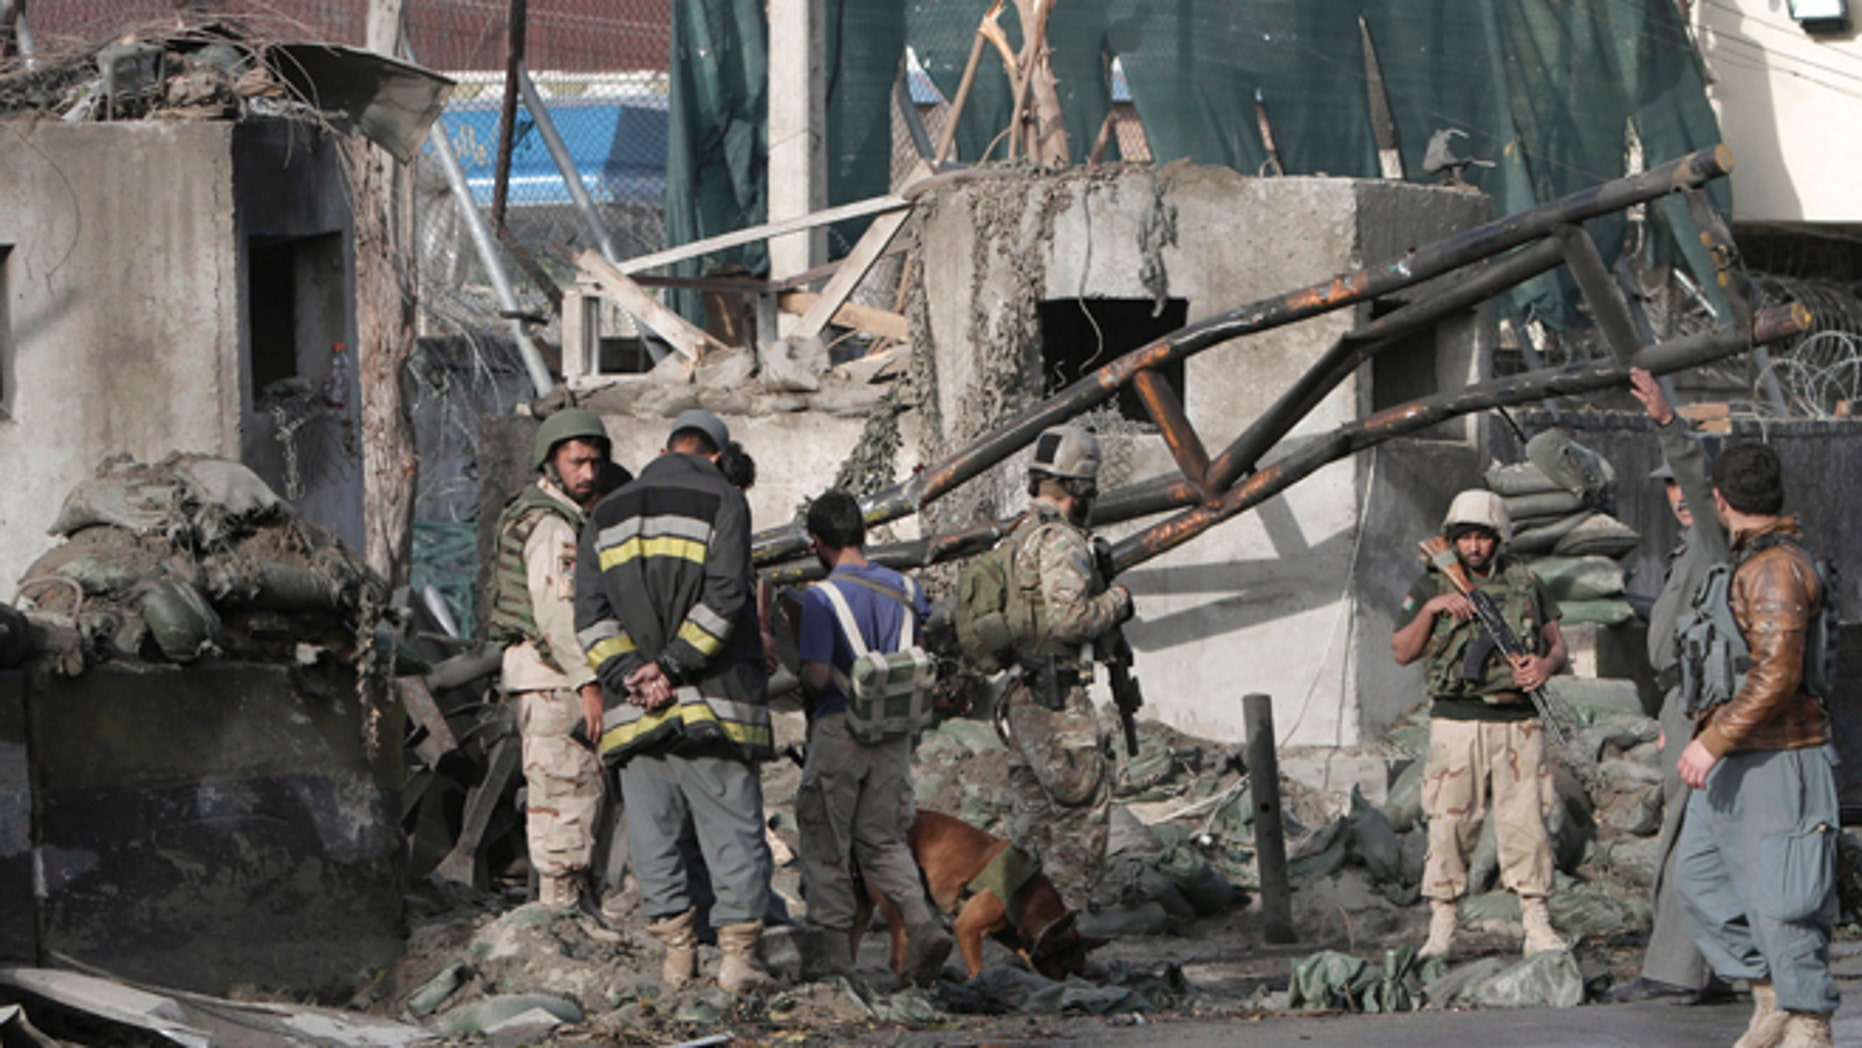 March 26, 2013: Afghan police and U.S. forces arrive to the scene after eight suicide bombers attacked a police headquarters in the eastern Afghan city of Jalalabad, Afghanistan, killing five police officers and wounding four others,  a security official said. An insurgent in a bomb-laden car detonated his vehicle in front of the Jalalabad Police Quick Reaction Force to start the attack, and another seven attackers wearing bomb vests then stormed the compound.